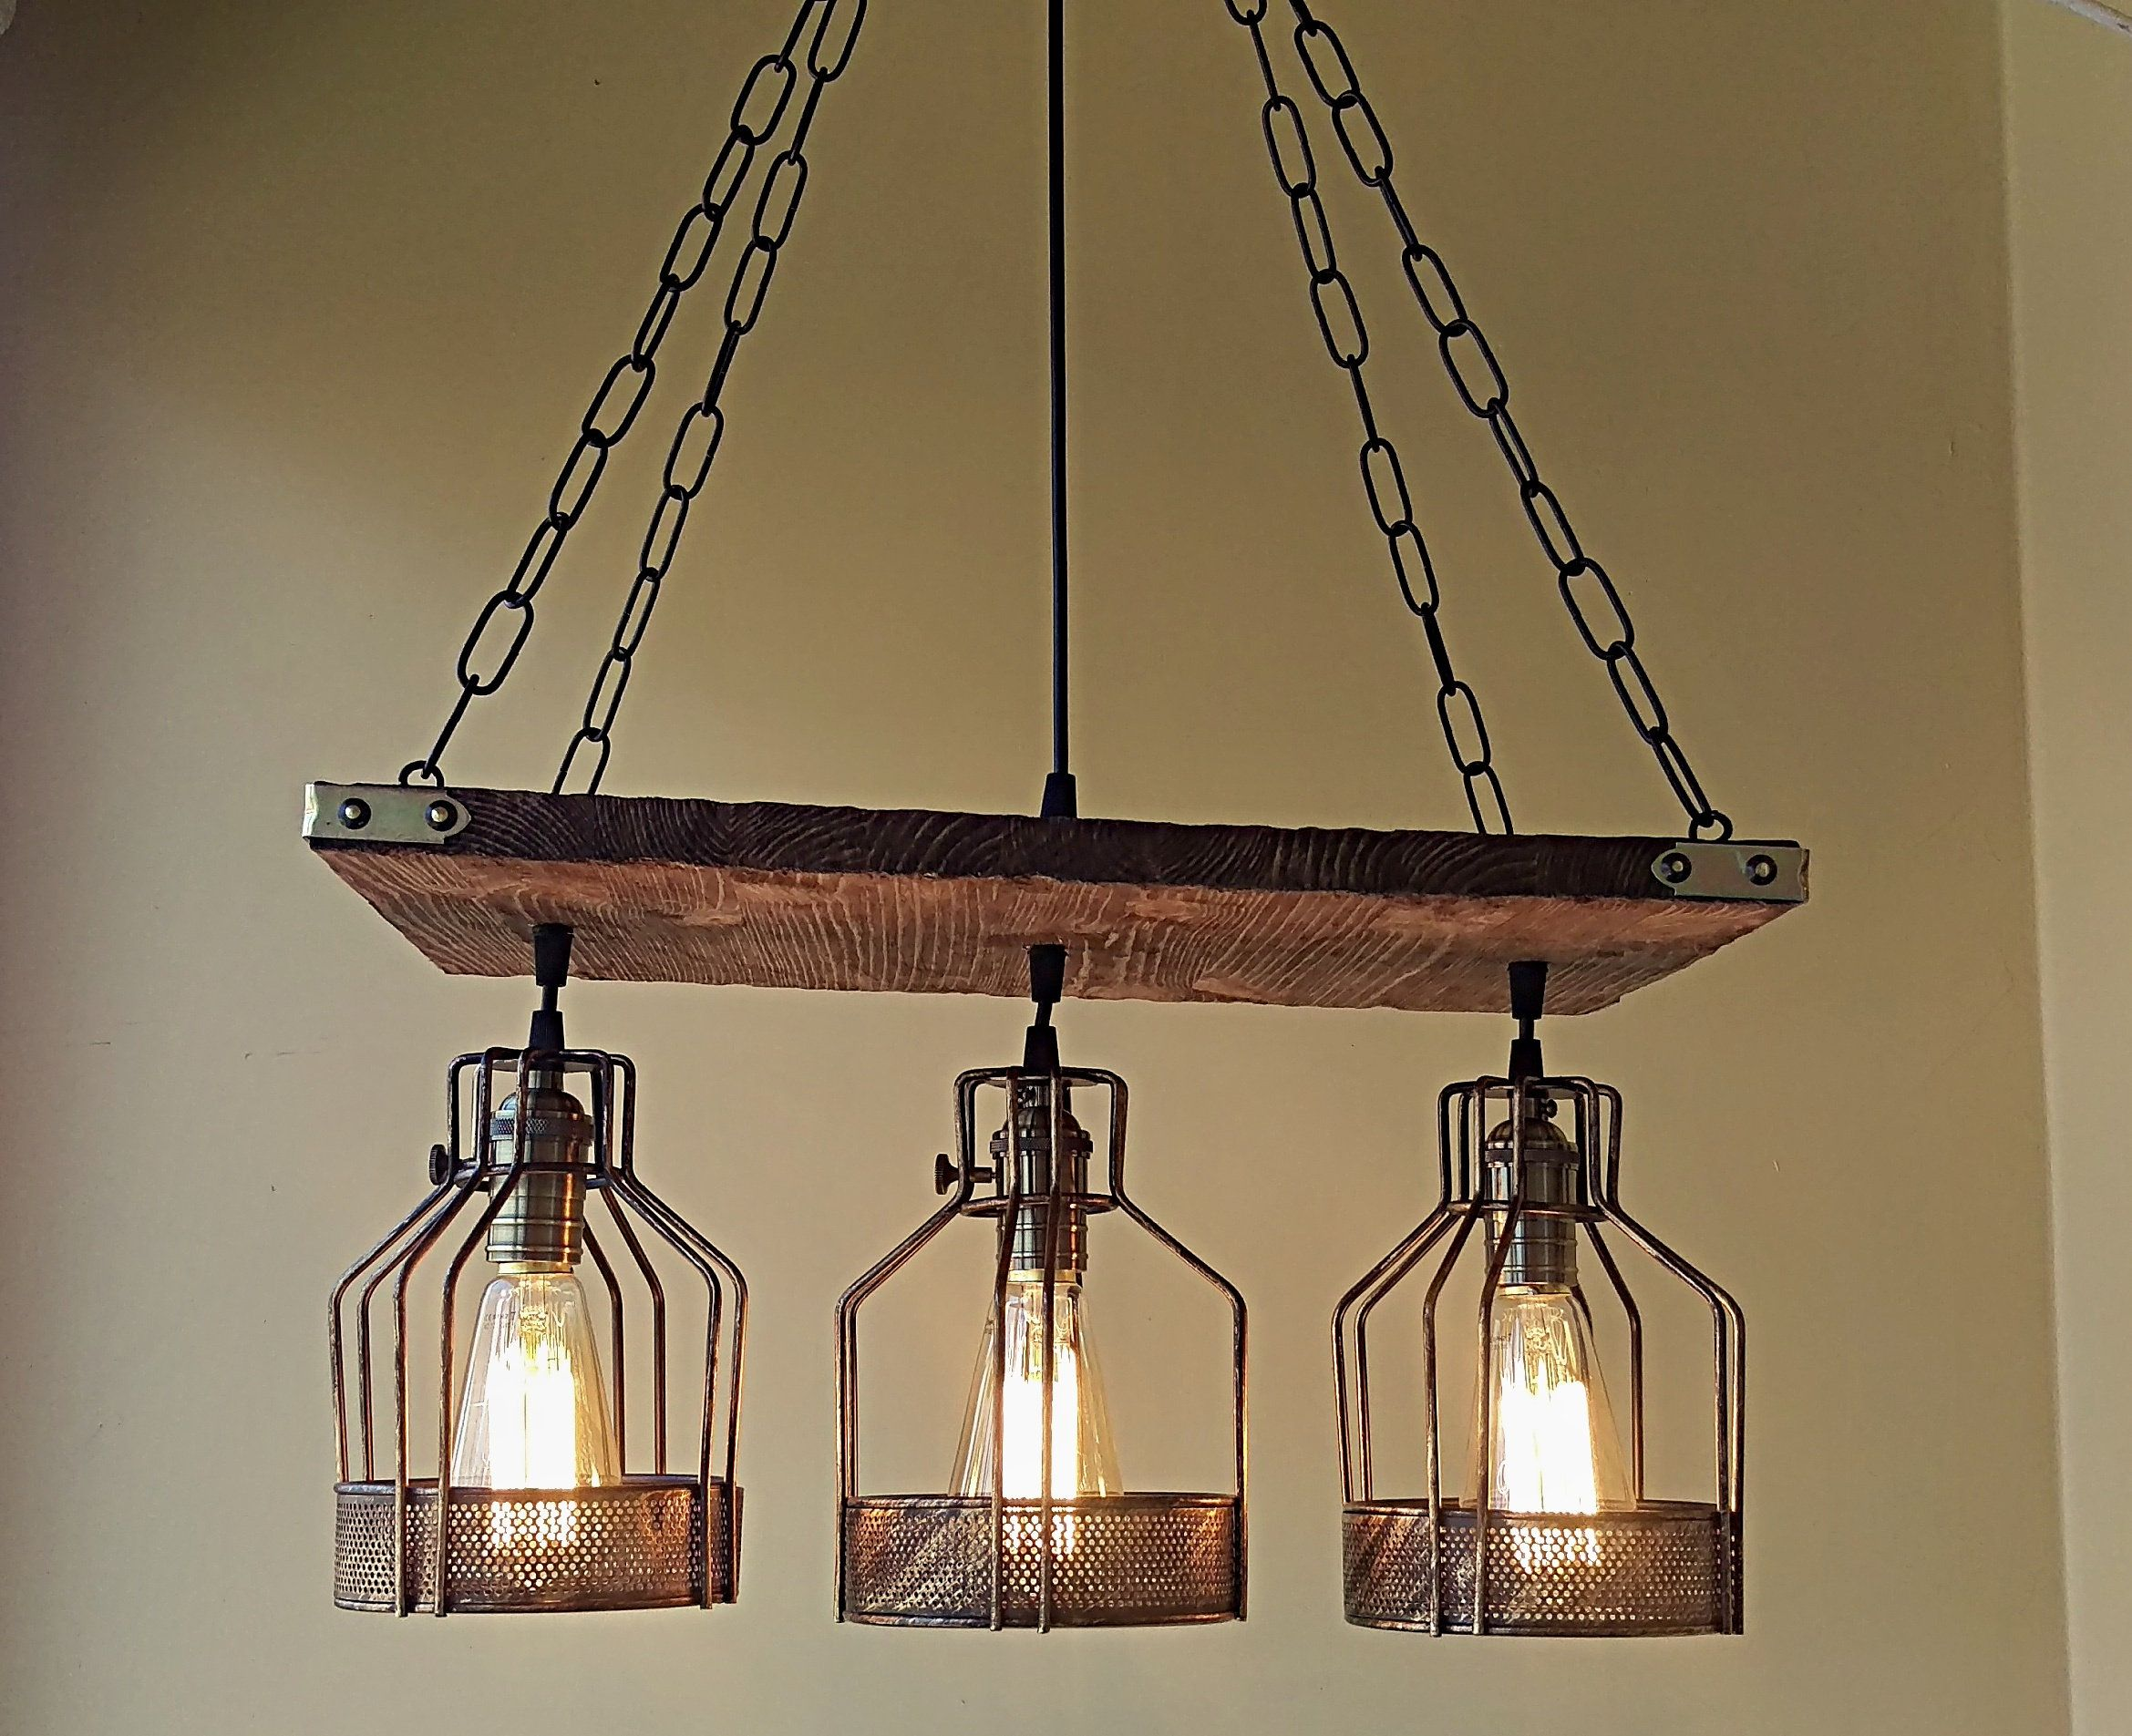 Ceiling Aged Wood Pendant Lighting Rustic Ceiling Lights Wood Pendant Light Rustic Pendant Lighting